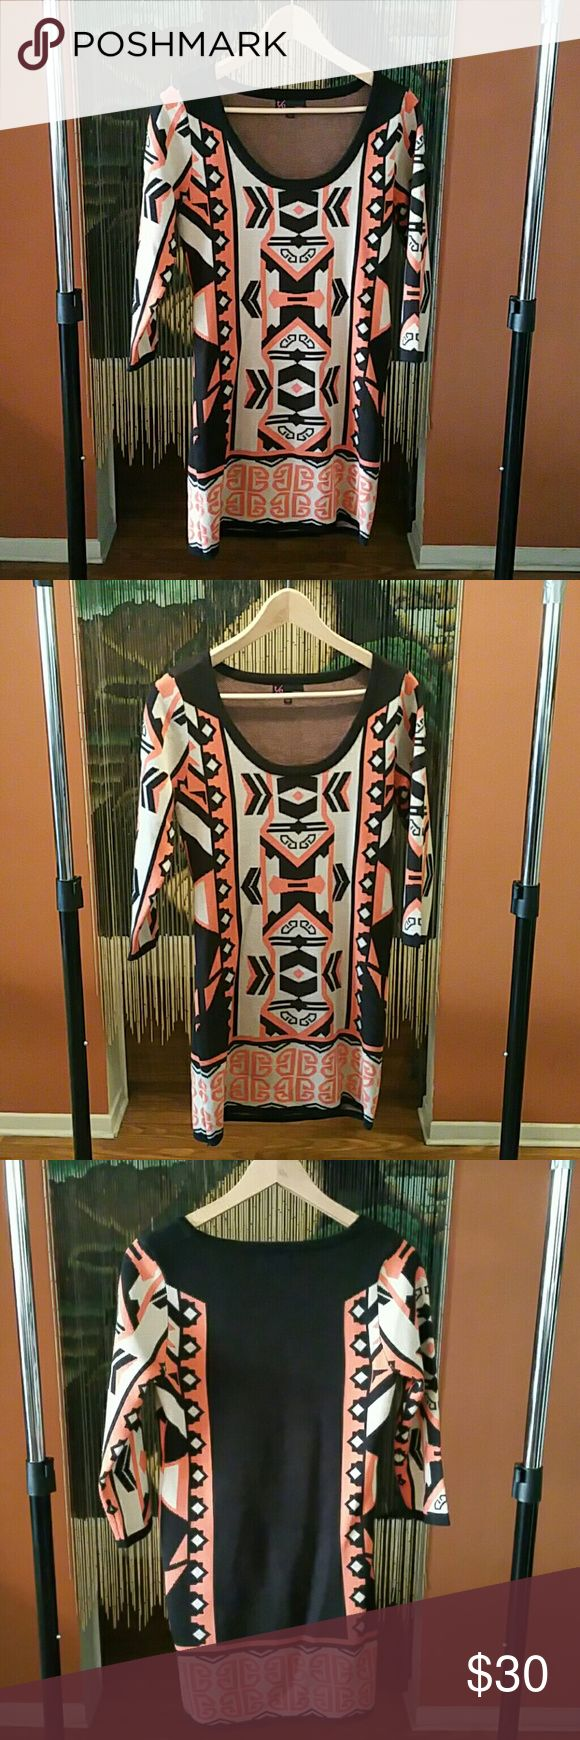 """Sweater dress Perfect for the colder weather! Pair with leggings or knee length boots. Aztec print. 100% acrylic. Flat lay measurements: 17"""" sleeve, 30"""" dress length, 14"""" armpit to armpit, 14.5"""" waist (29"""" round). New, no tags, never worn. TO Dresses Mini"""